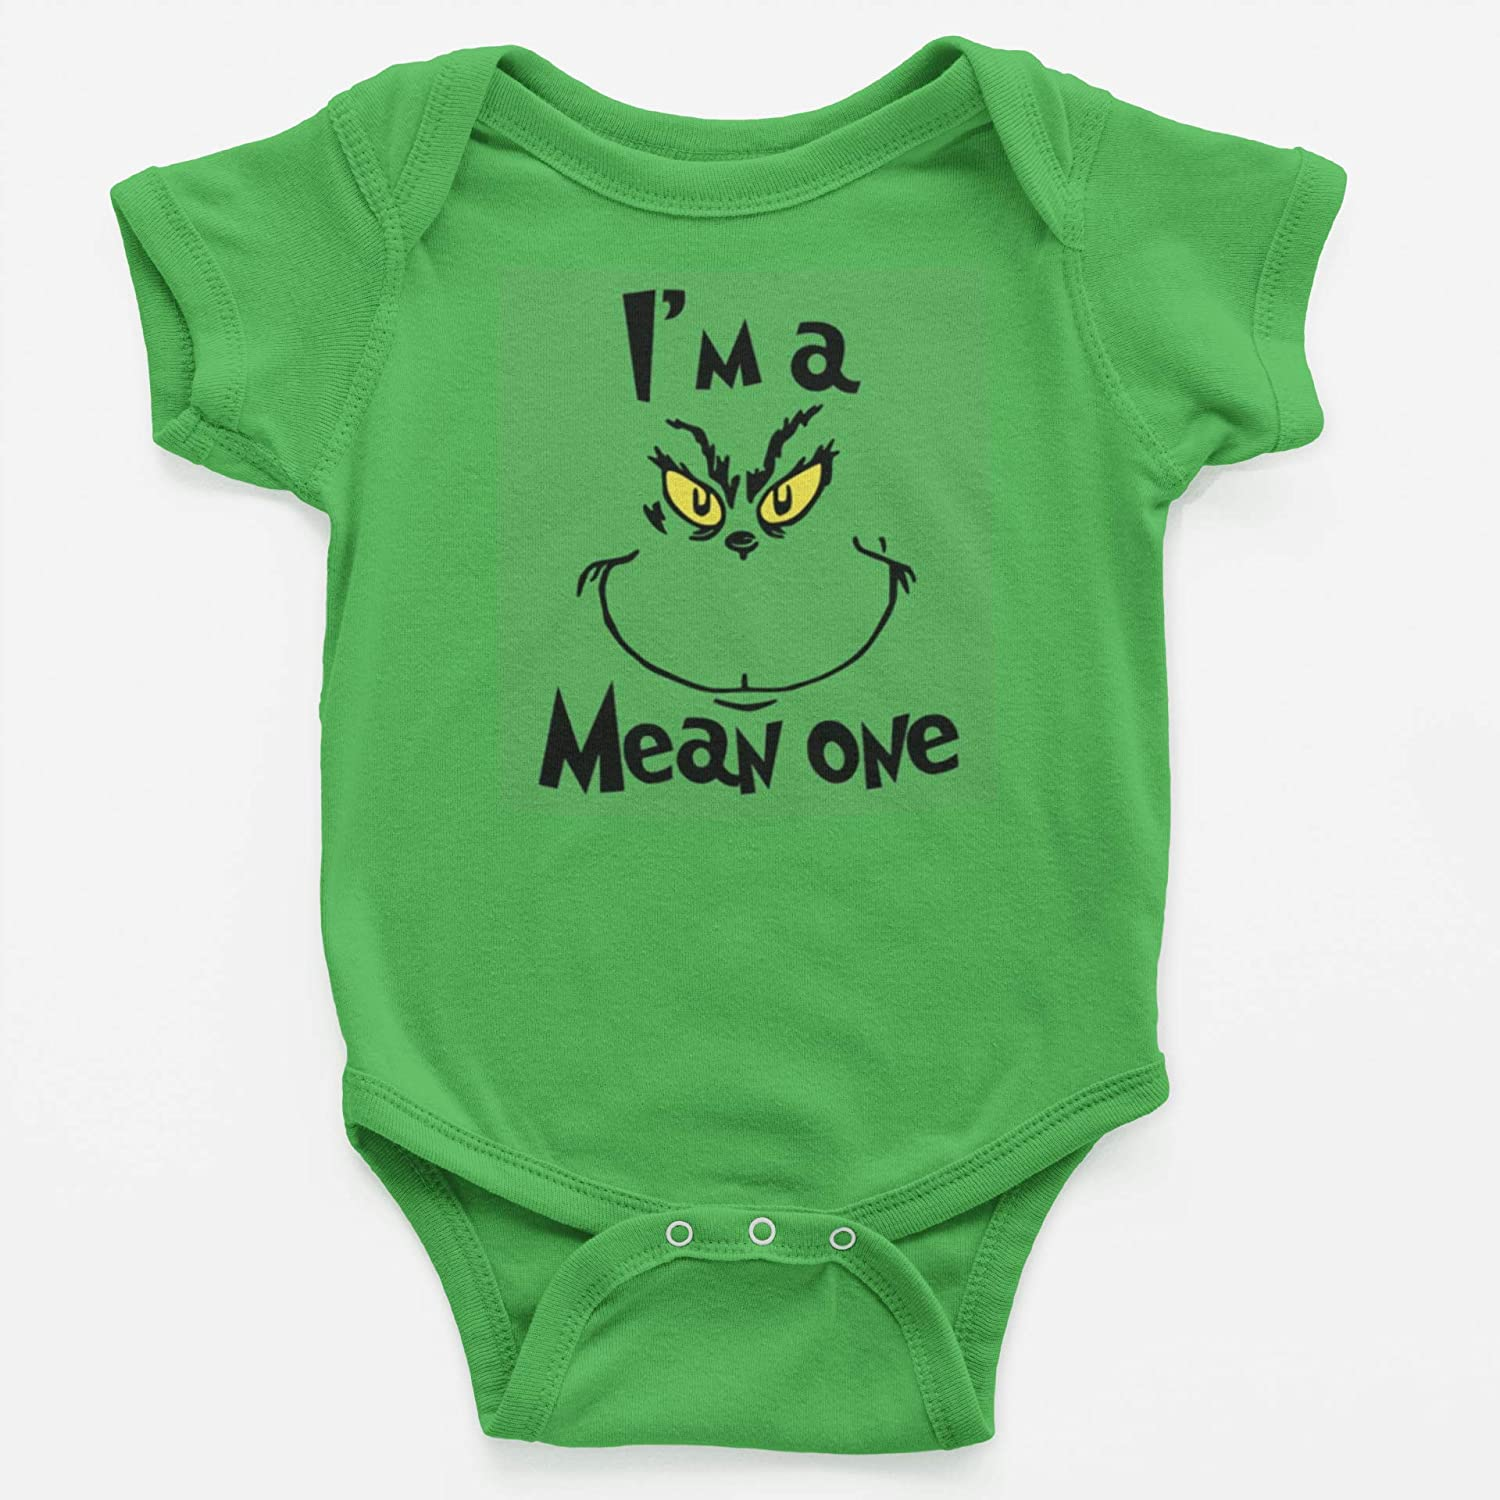 The Grinch Face Infant Holiday Bodysuit gift for boys and girls birthdays and holidays